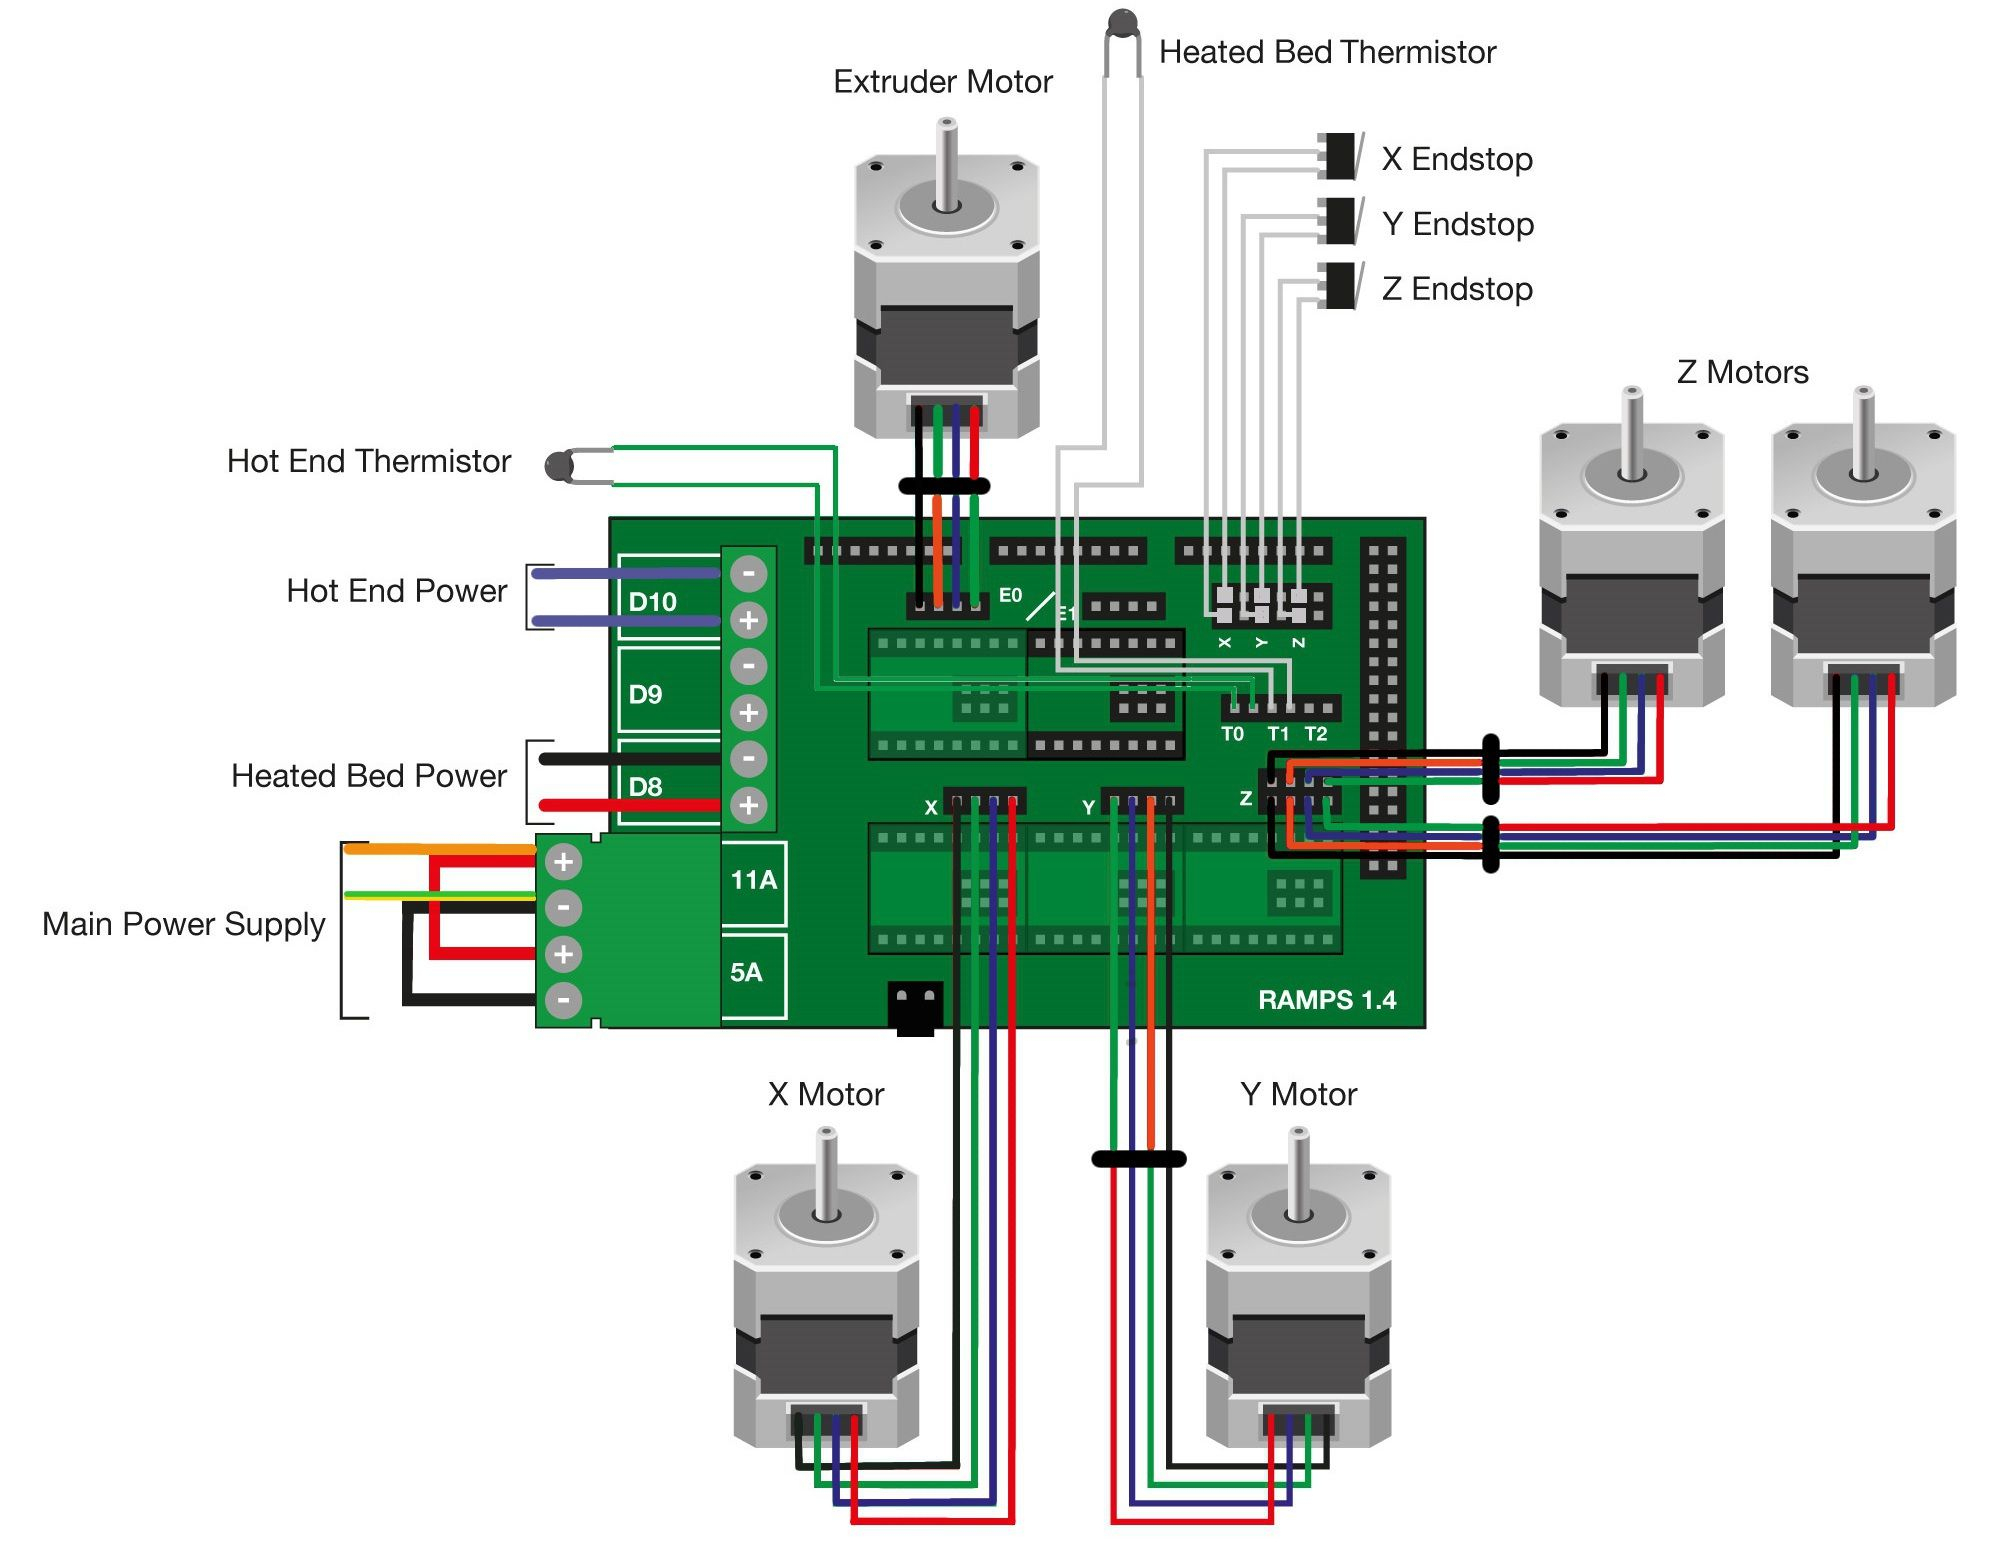 Ramps 1 4 Fan Wiring Diagram | Wiring Library - Ramps 1.4 Wiring Diagram